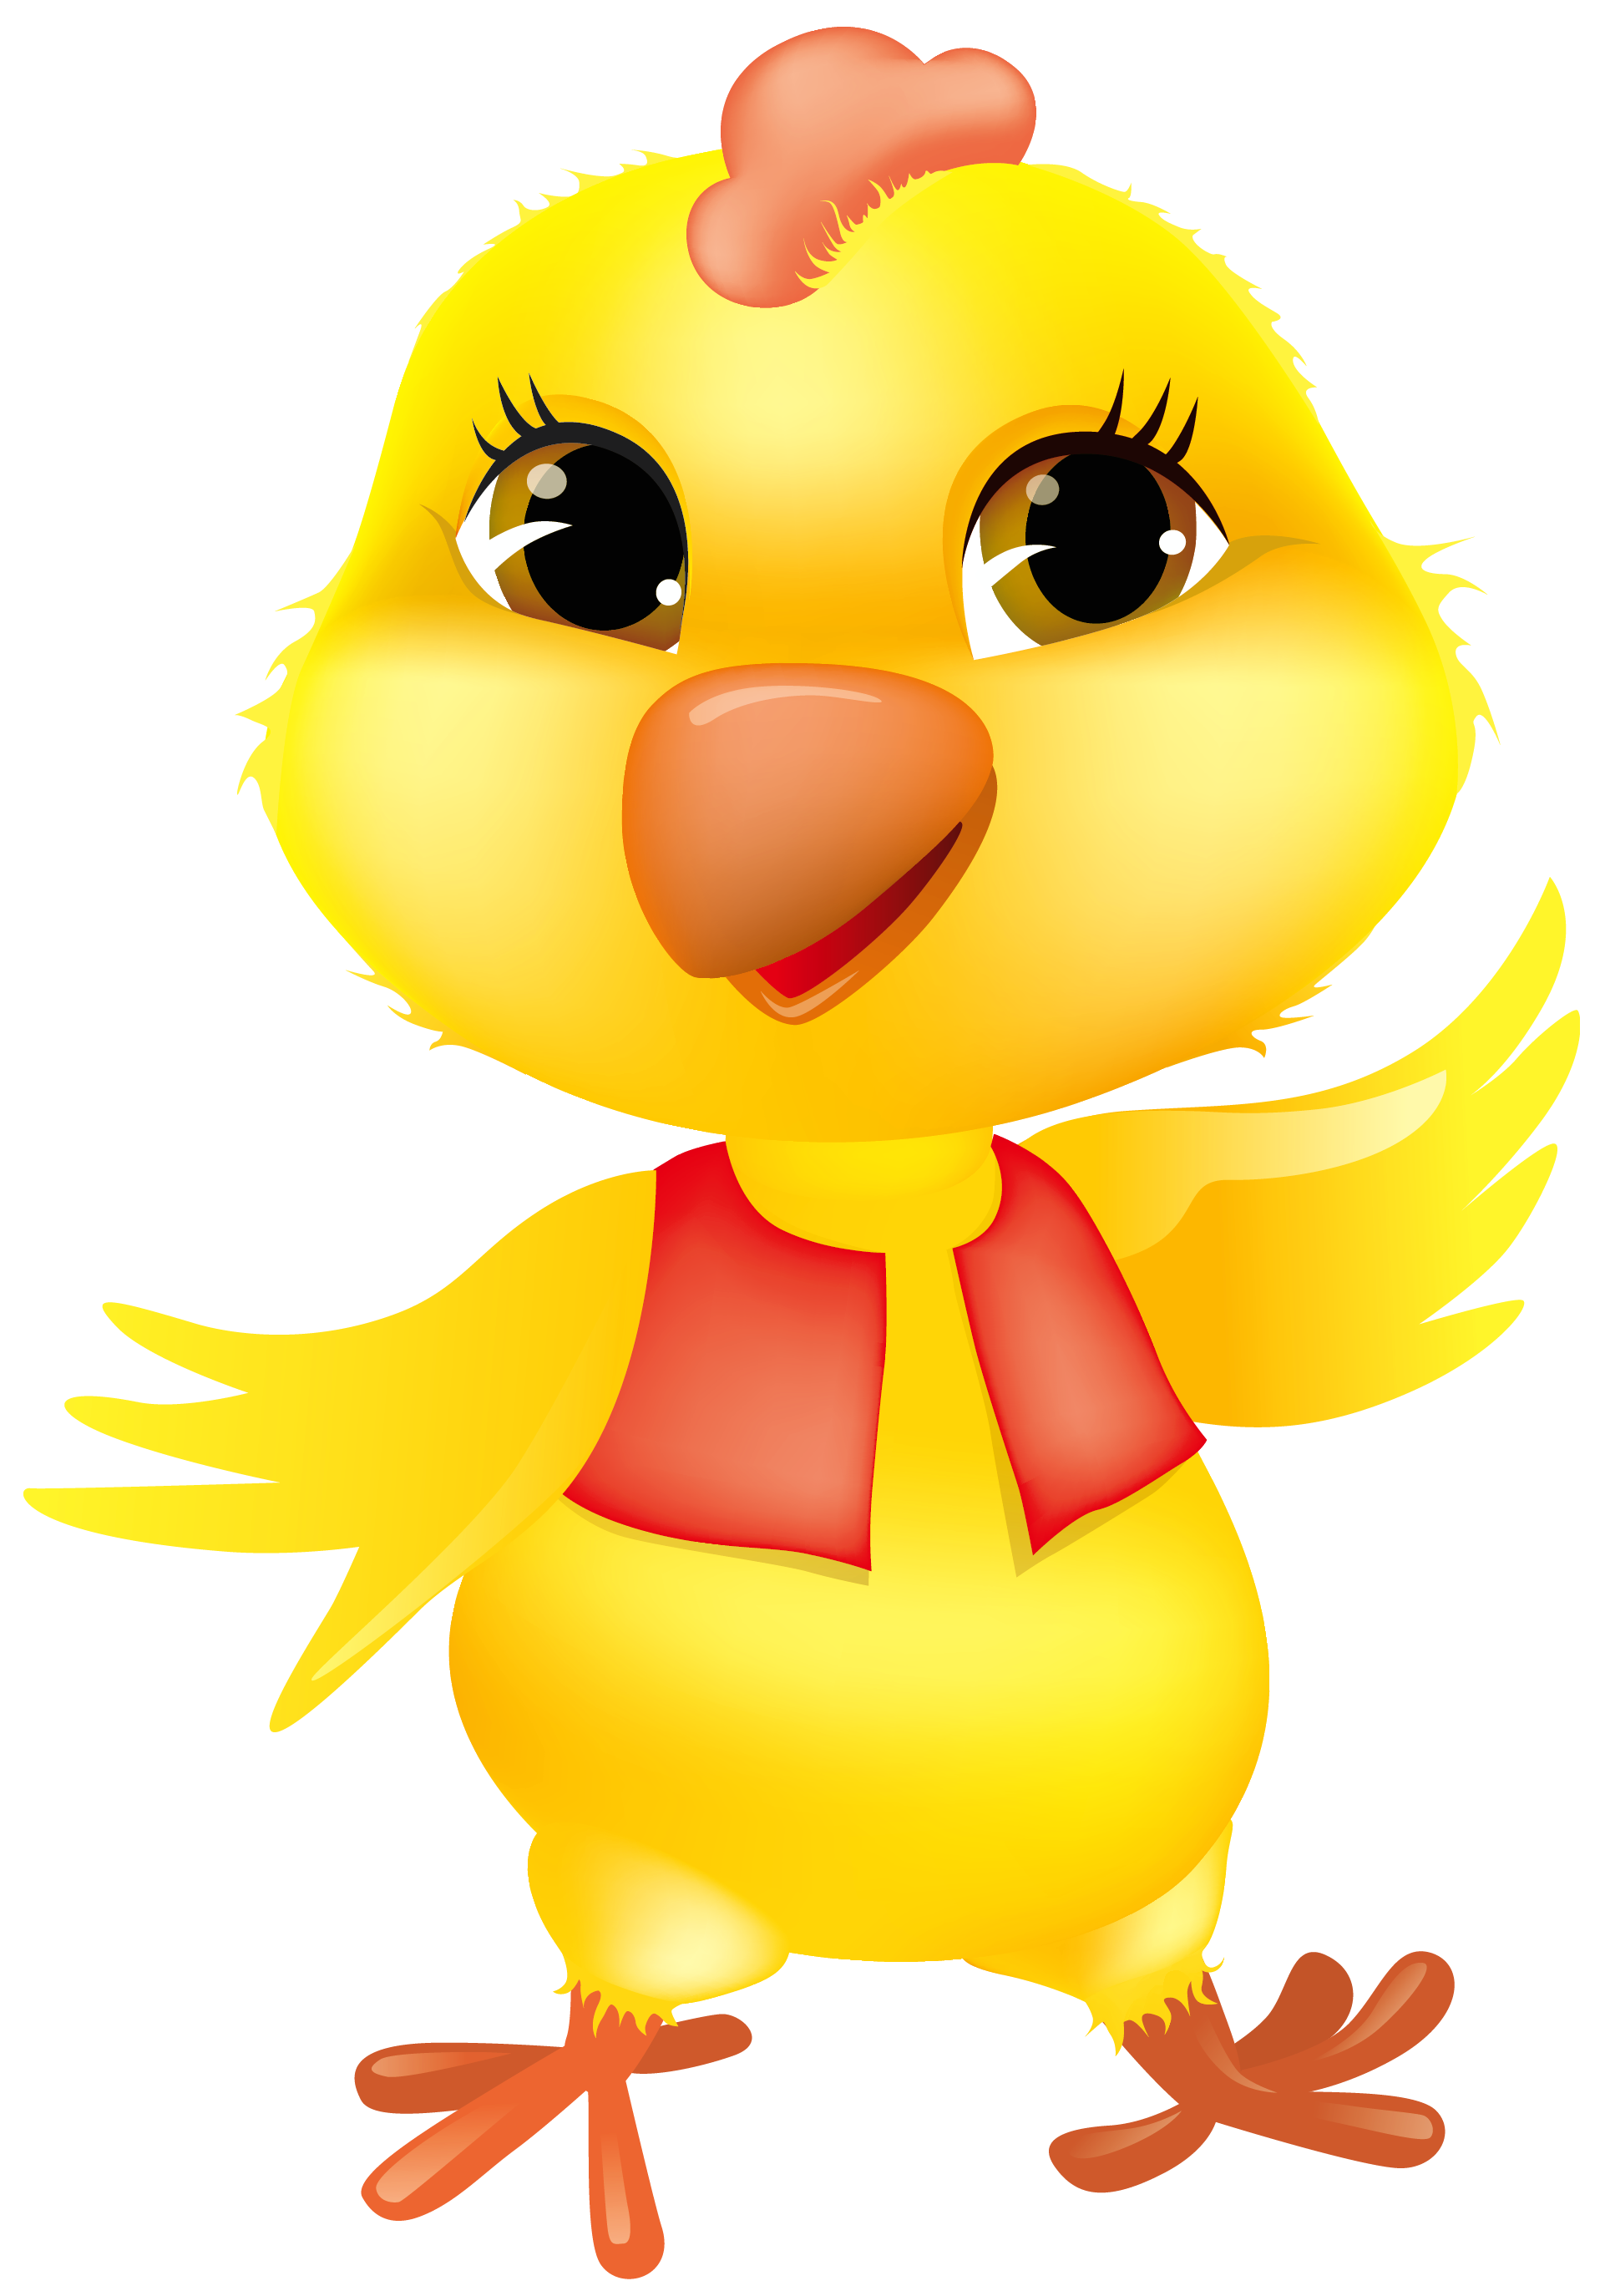 Easter chick png. Clipart picture gallery yopriceville